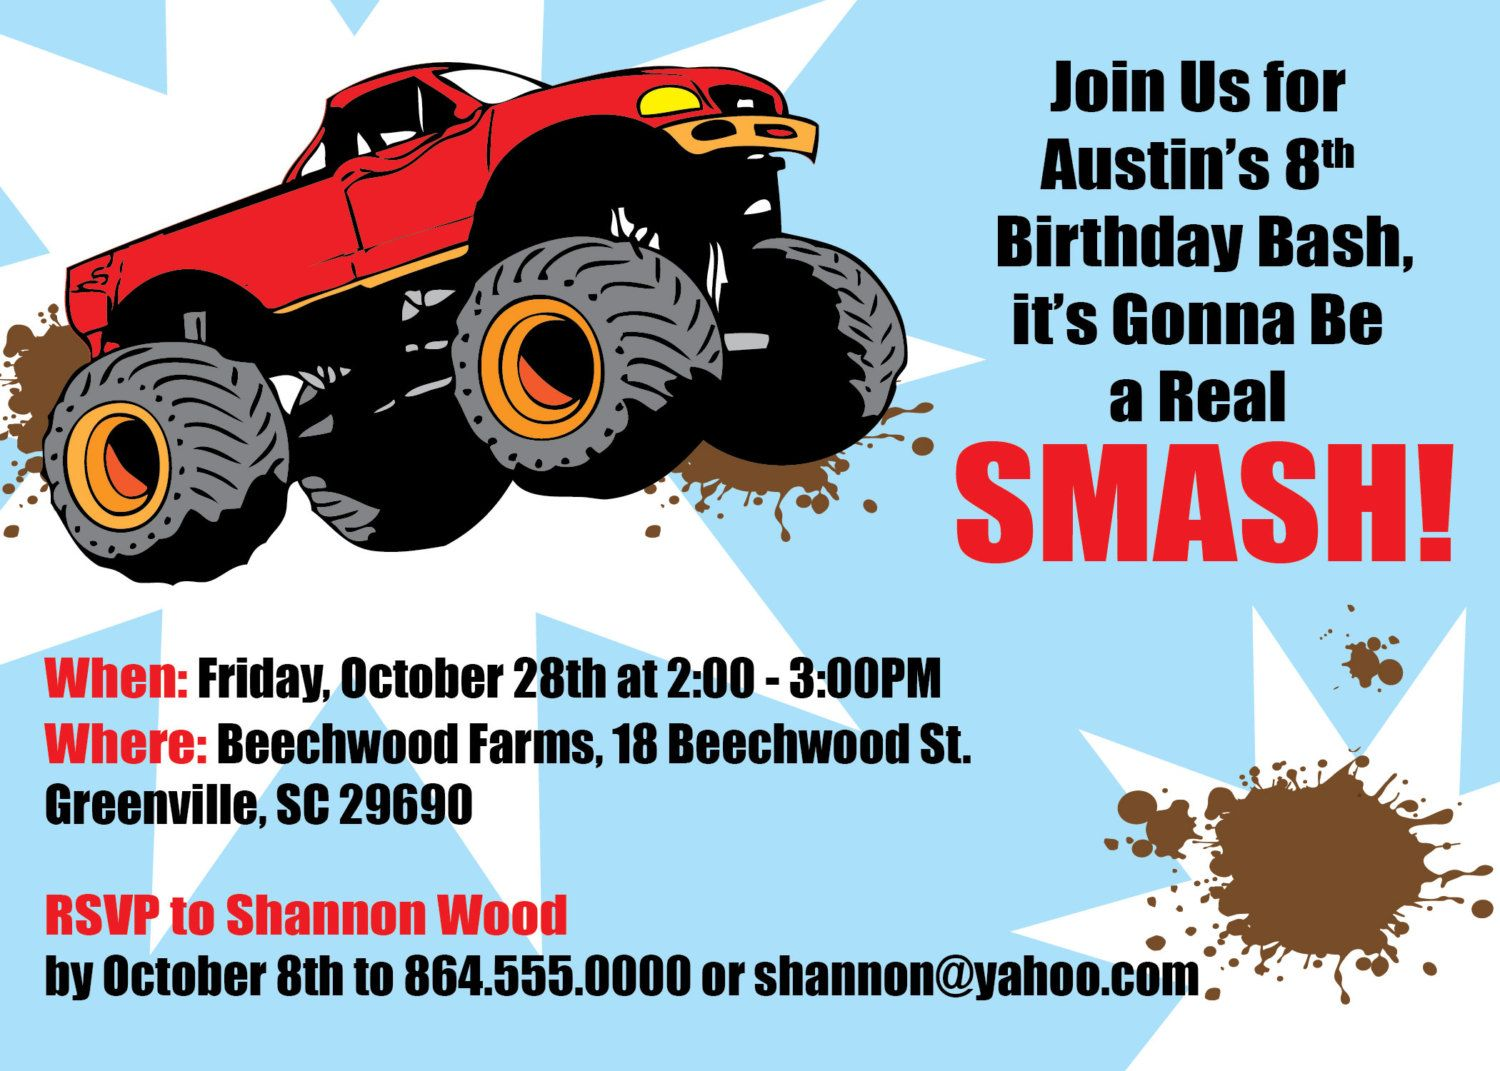 photograph regarding Monster Truck Birthday Invitations Free Printable named Free of charge Printable Monster Truck Birthday Invites Birthday